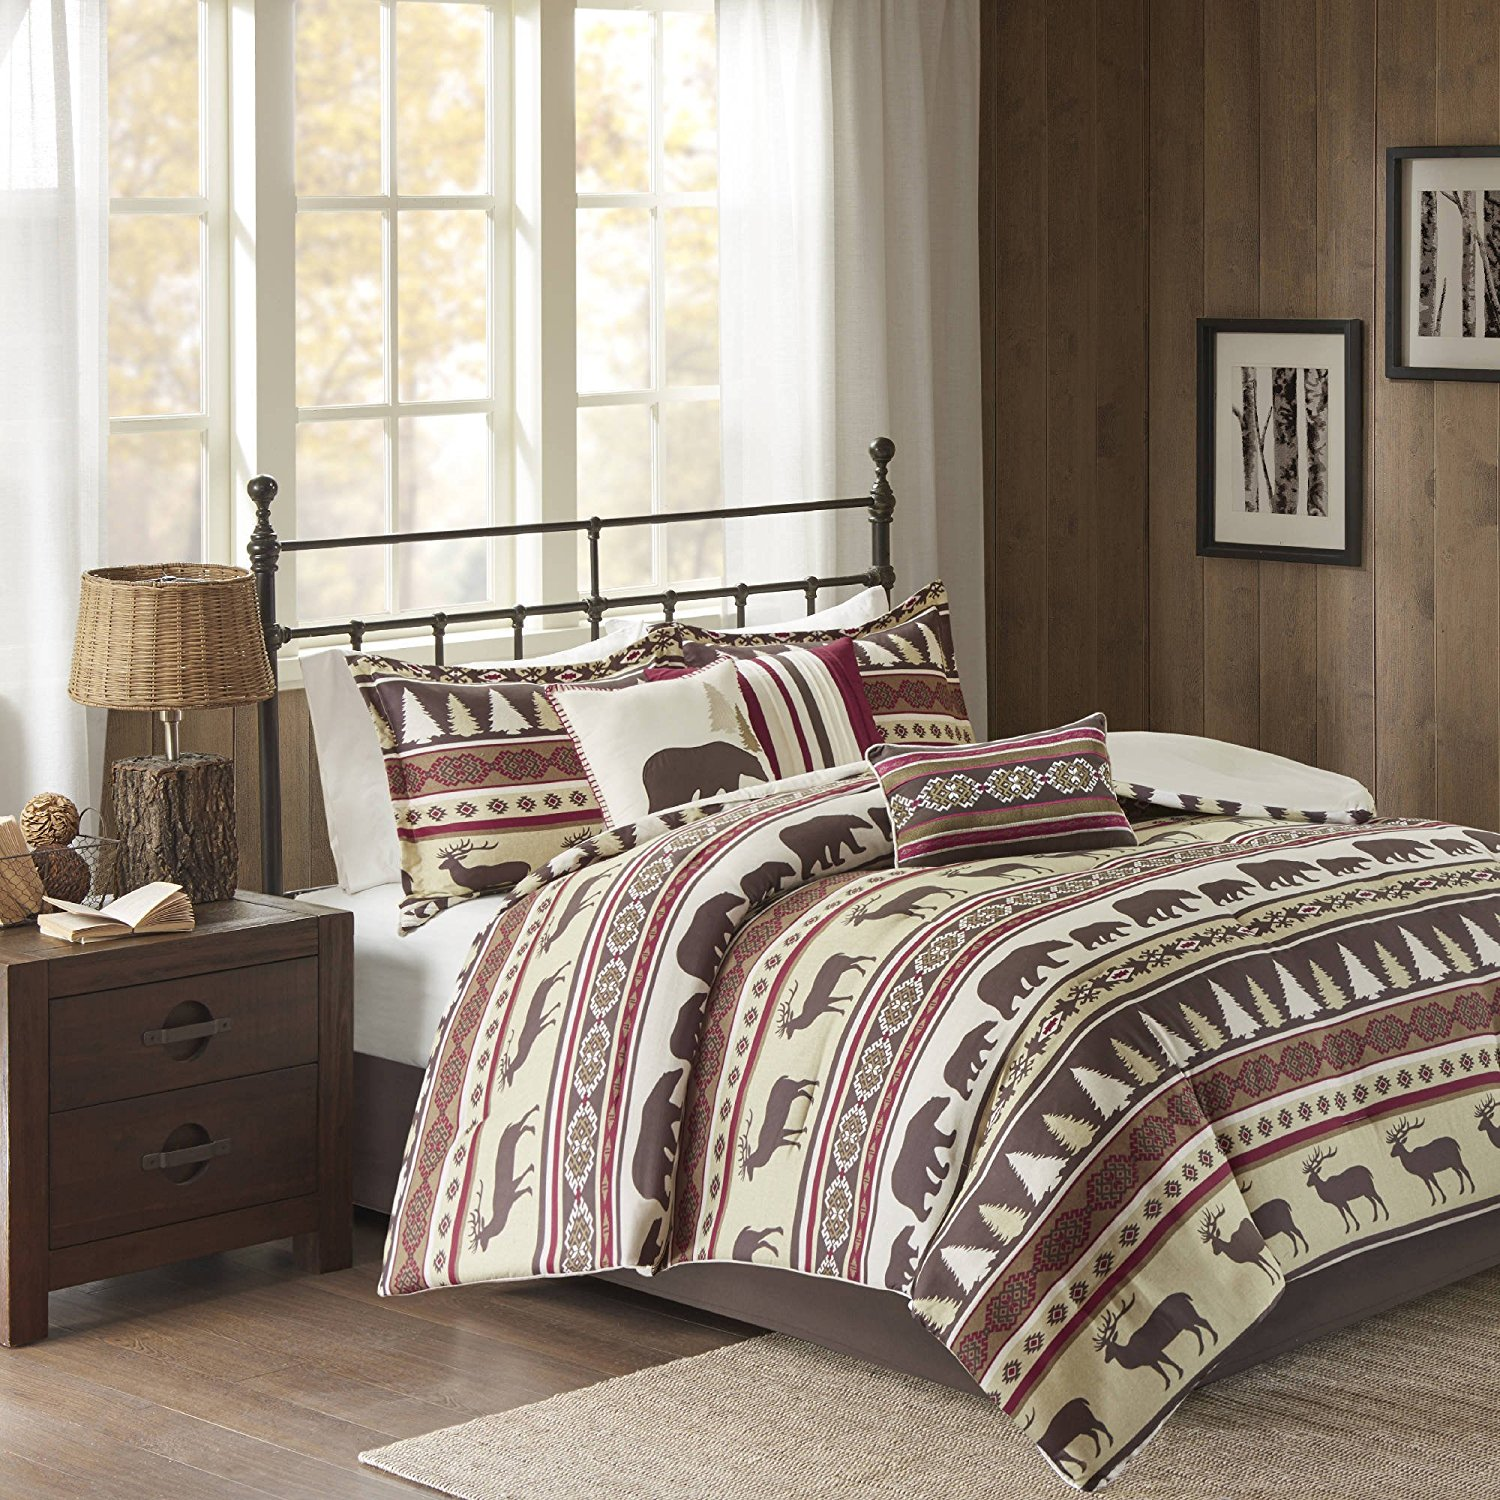 7 Piece Red Tan Brown Southwest Nature Comforter Cal King Set, Horizontal Stripe Hunting Deer Bear Motif Bedding, Lodge Cabin South West Western Outdoors Native American Themed Pattern, Polyester